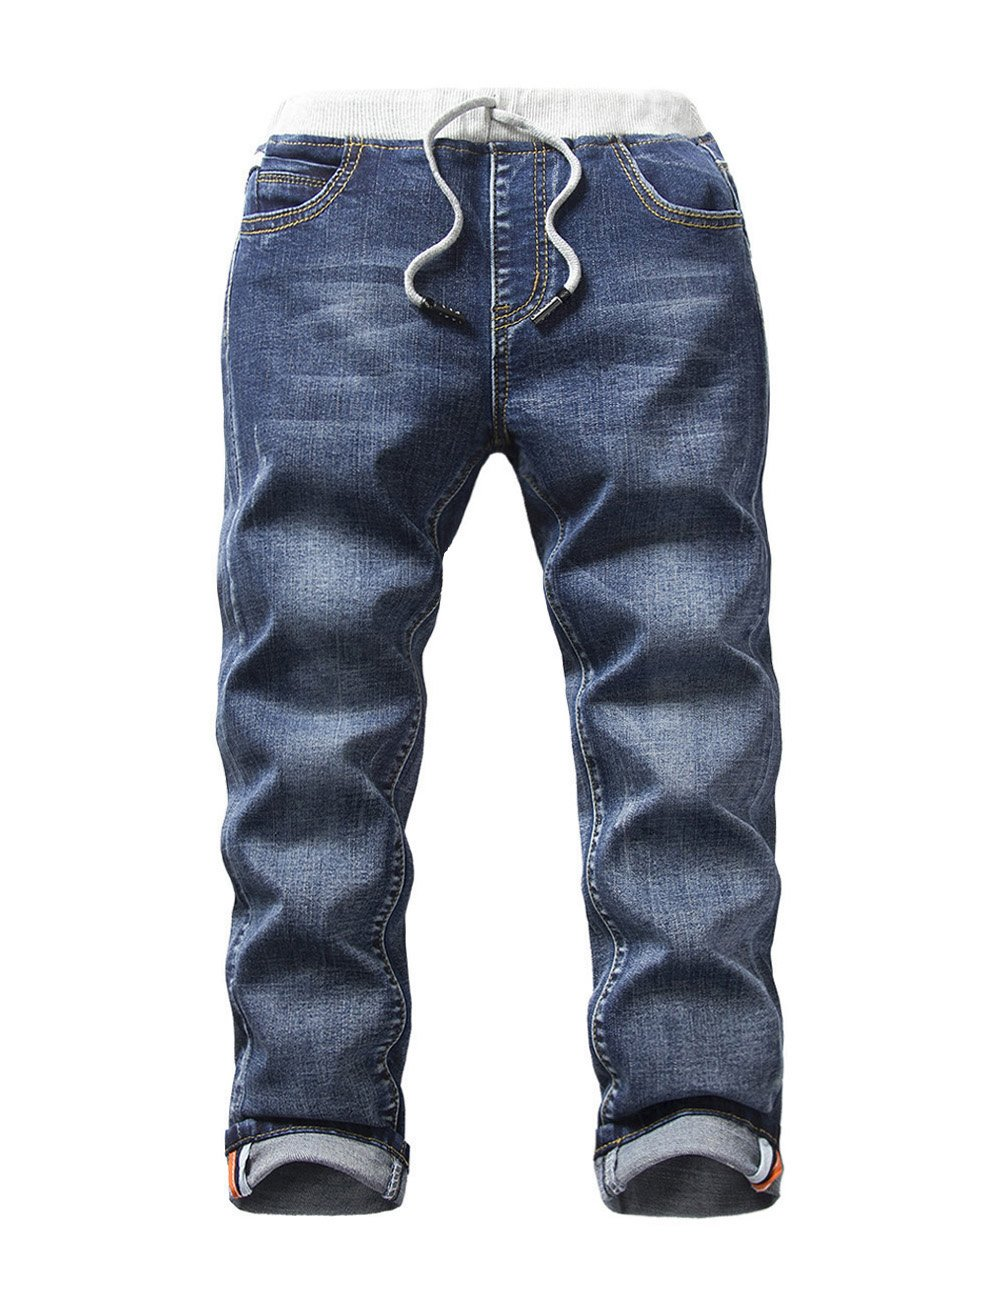 HOLLAGLEE Boys' Premium Skinny Jeans Slim Fit for Toddlers Kids and Big Boys (Beach Boy 114, 7)